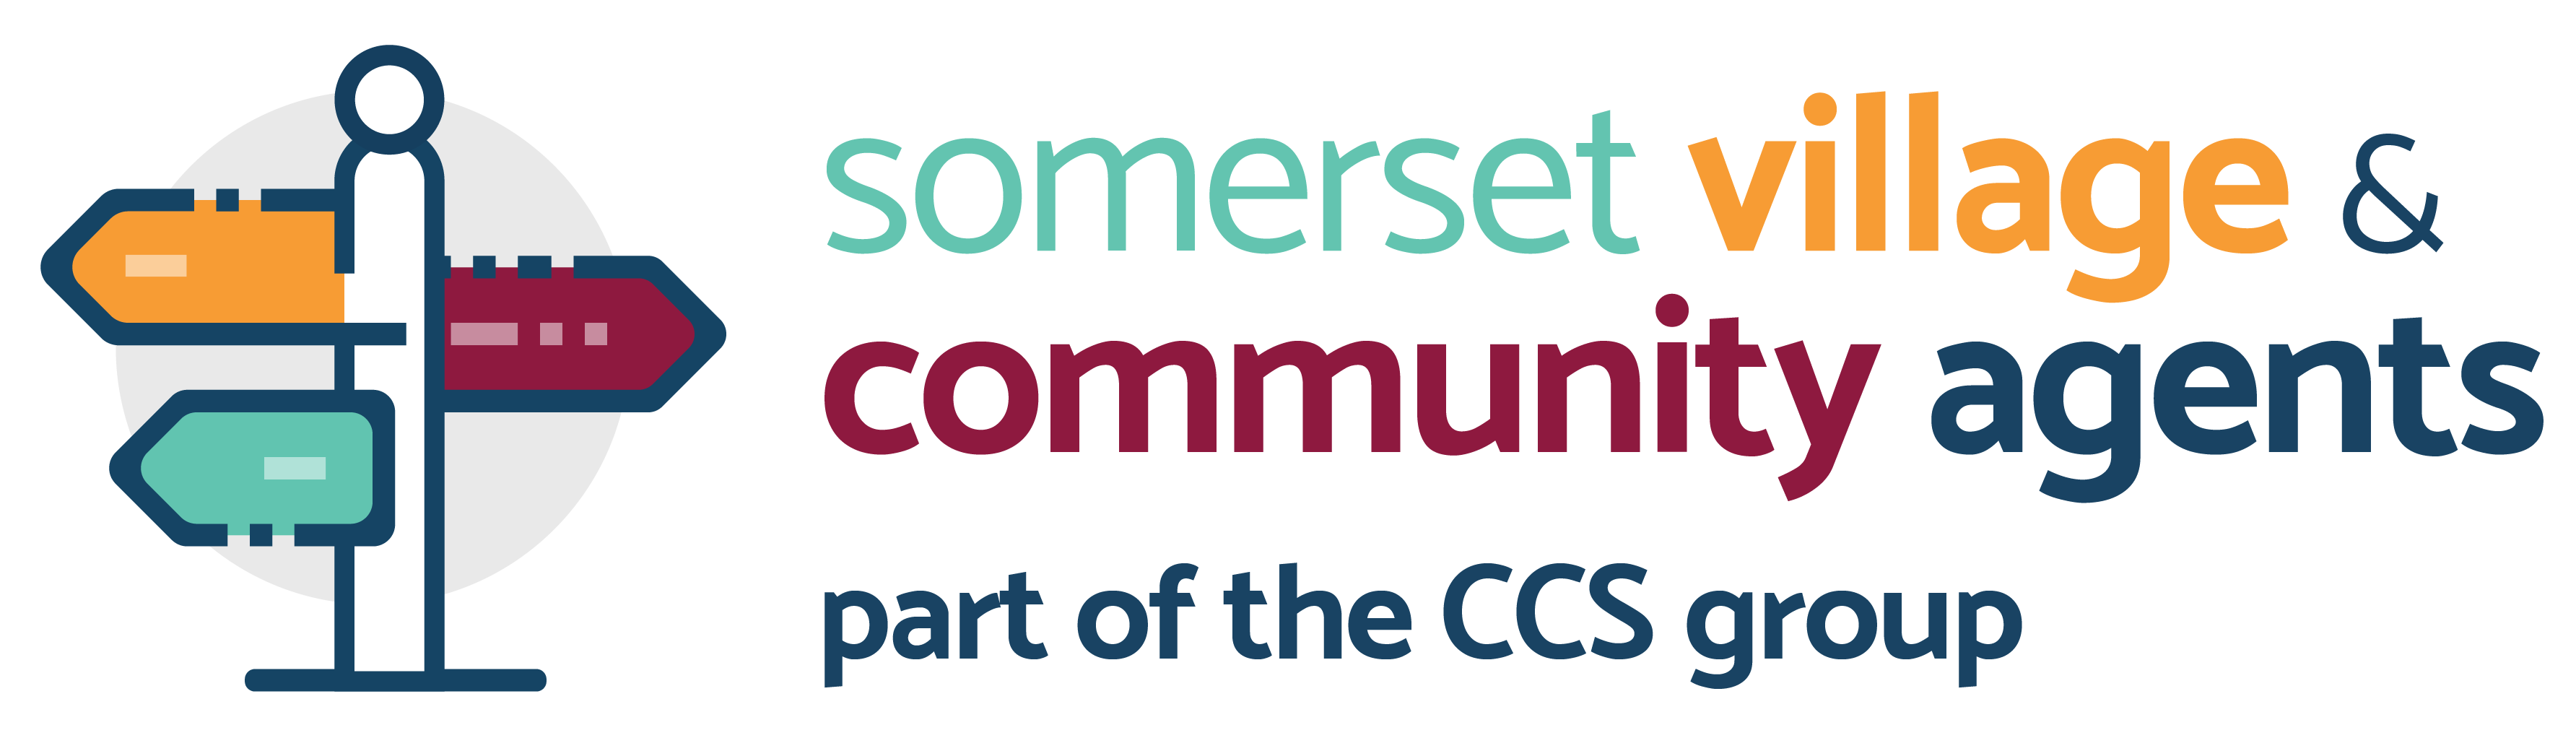 Community Council for Somerset